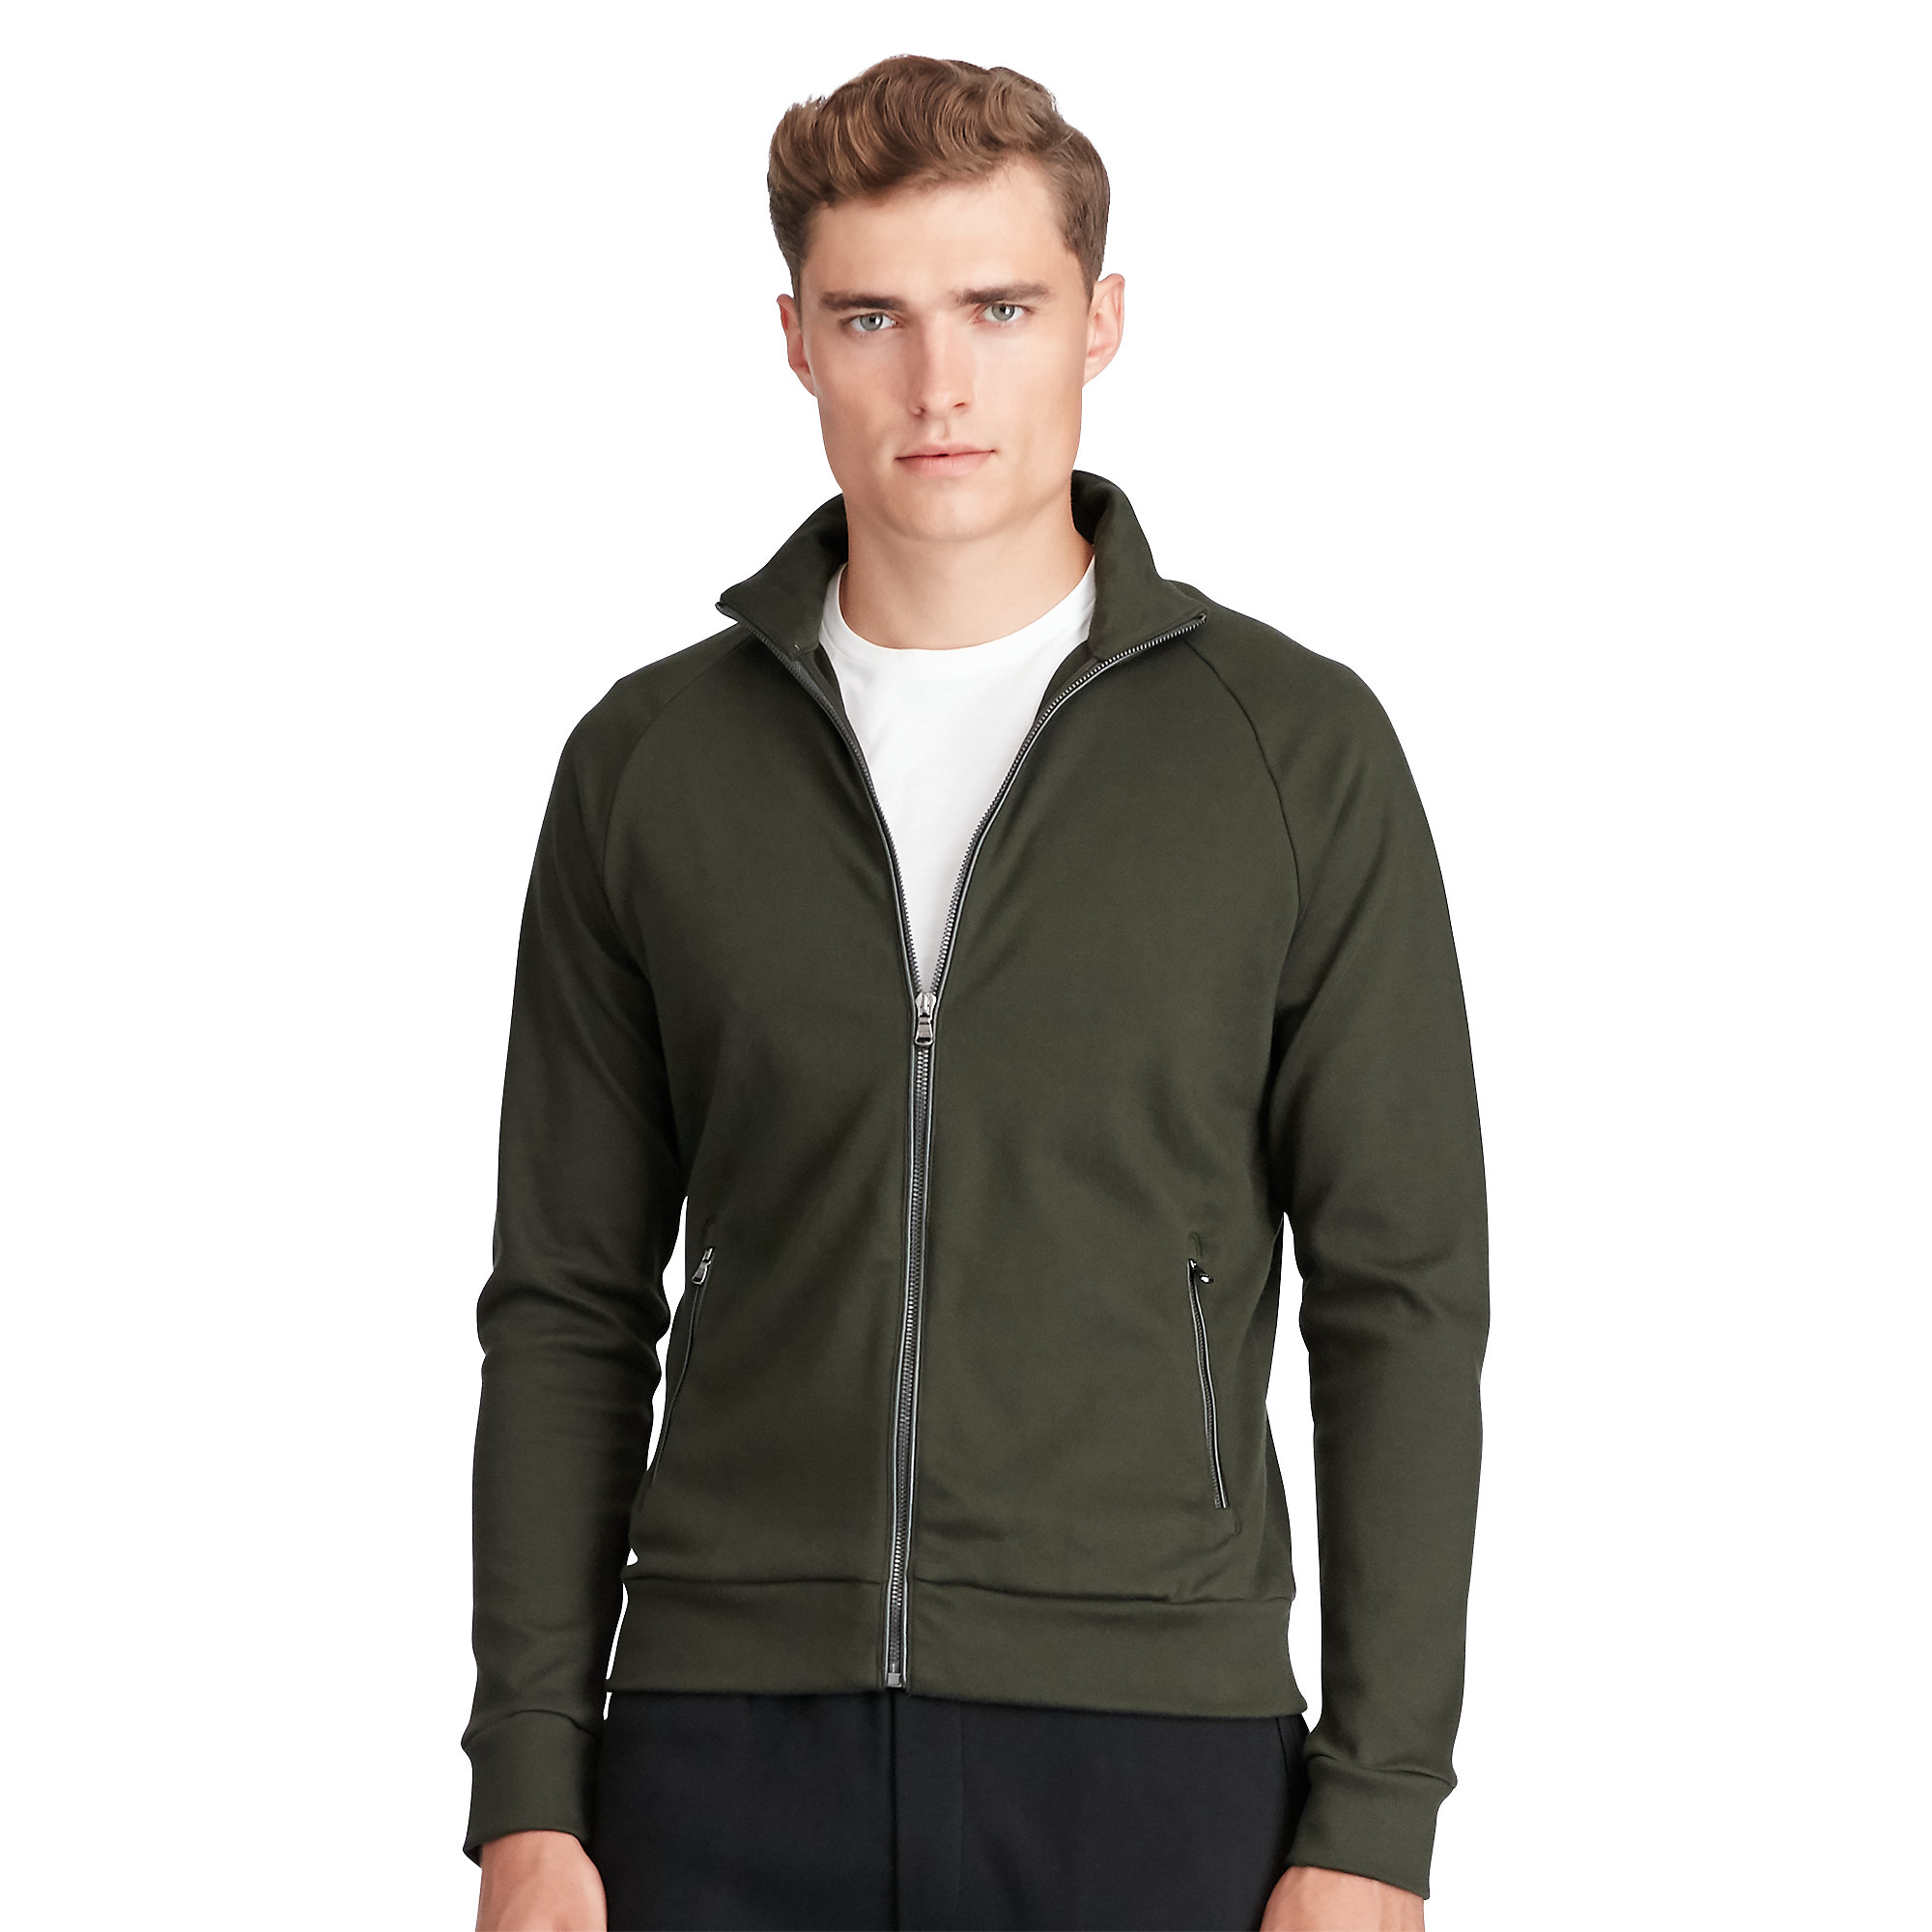 50f7447353a6 Lyst - Polo Ralph Lauren Leather-trim Cotton Jacket in Green for Men